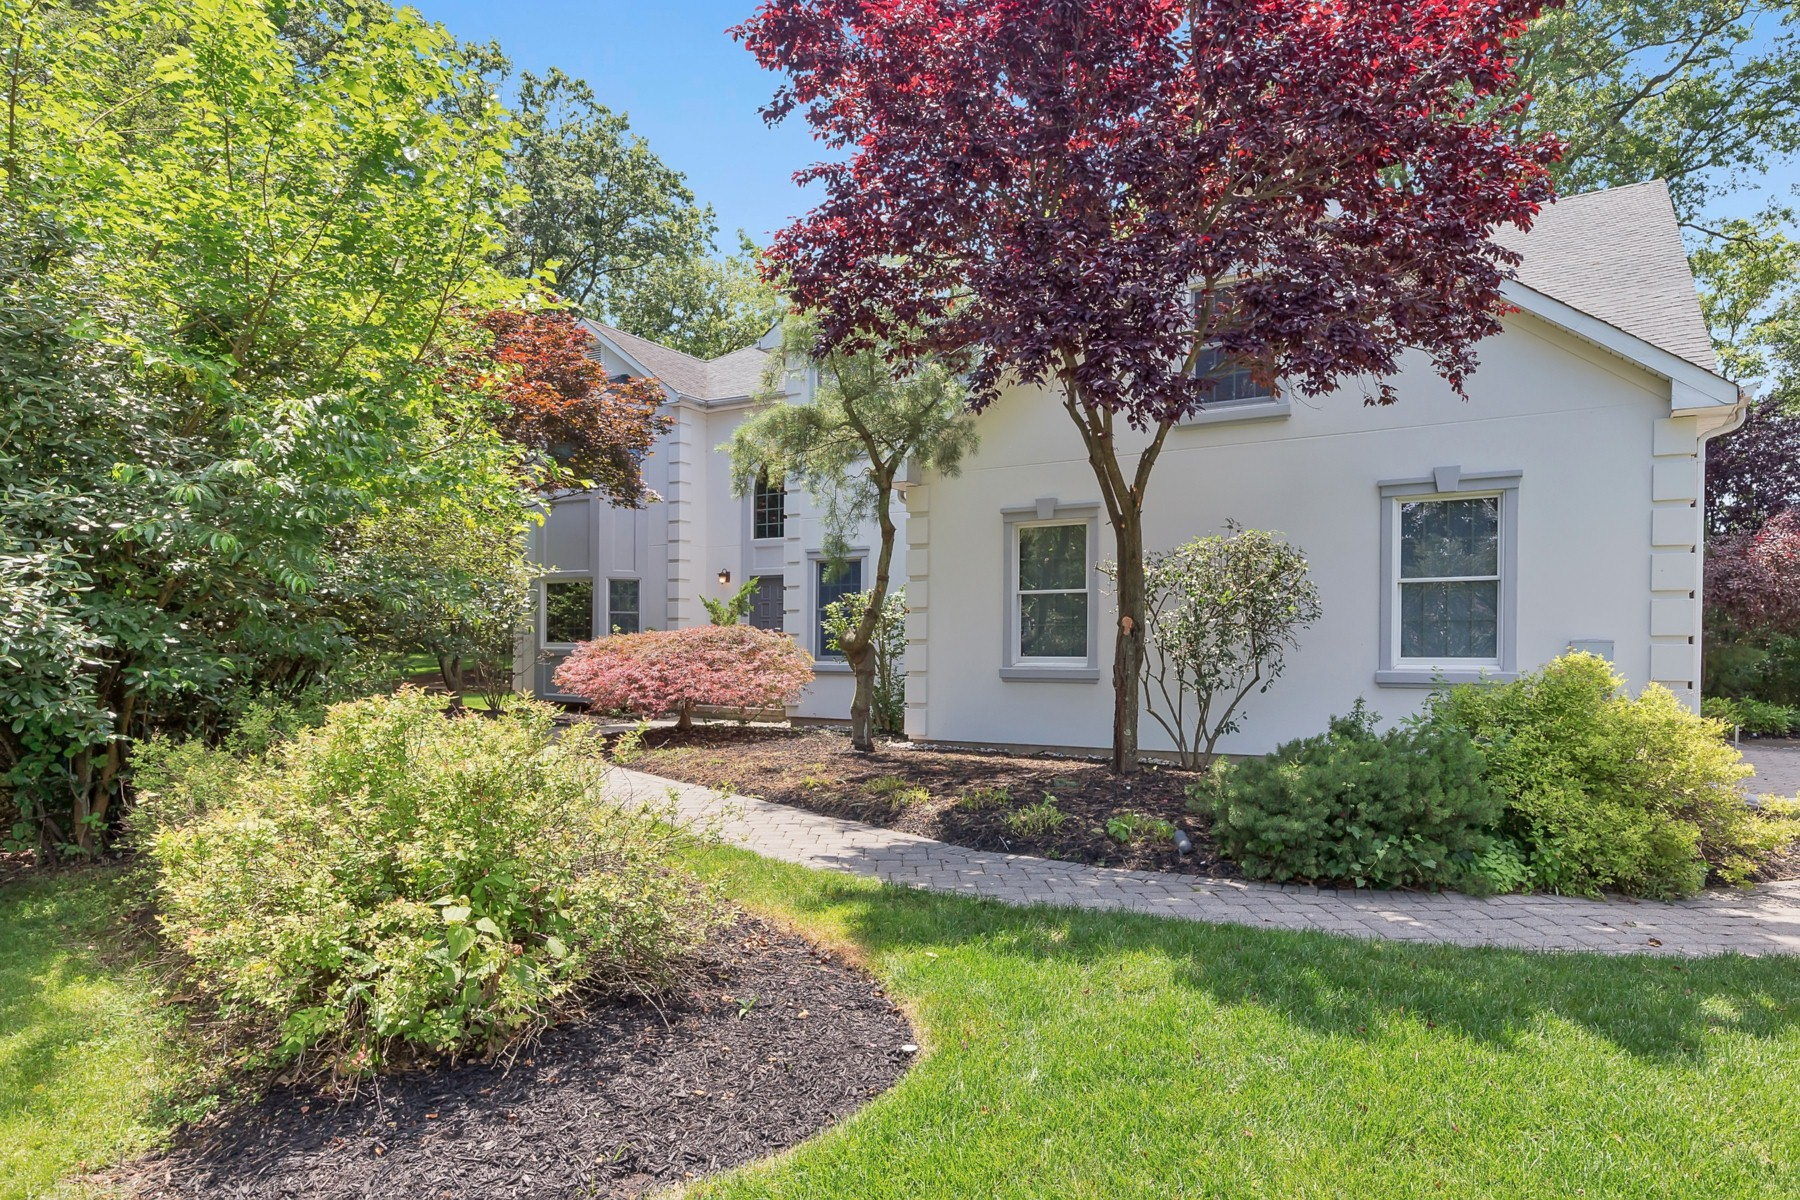 Vivienda unifamiliar por un Venta en Basque in the Privacy of Your Backyard which Backs up to a Golf Course 9 Jenna Lane Edison, Nueva Jersey 08820 Estados Unidos